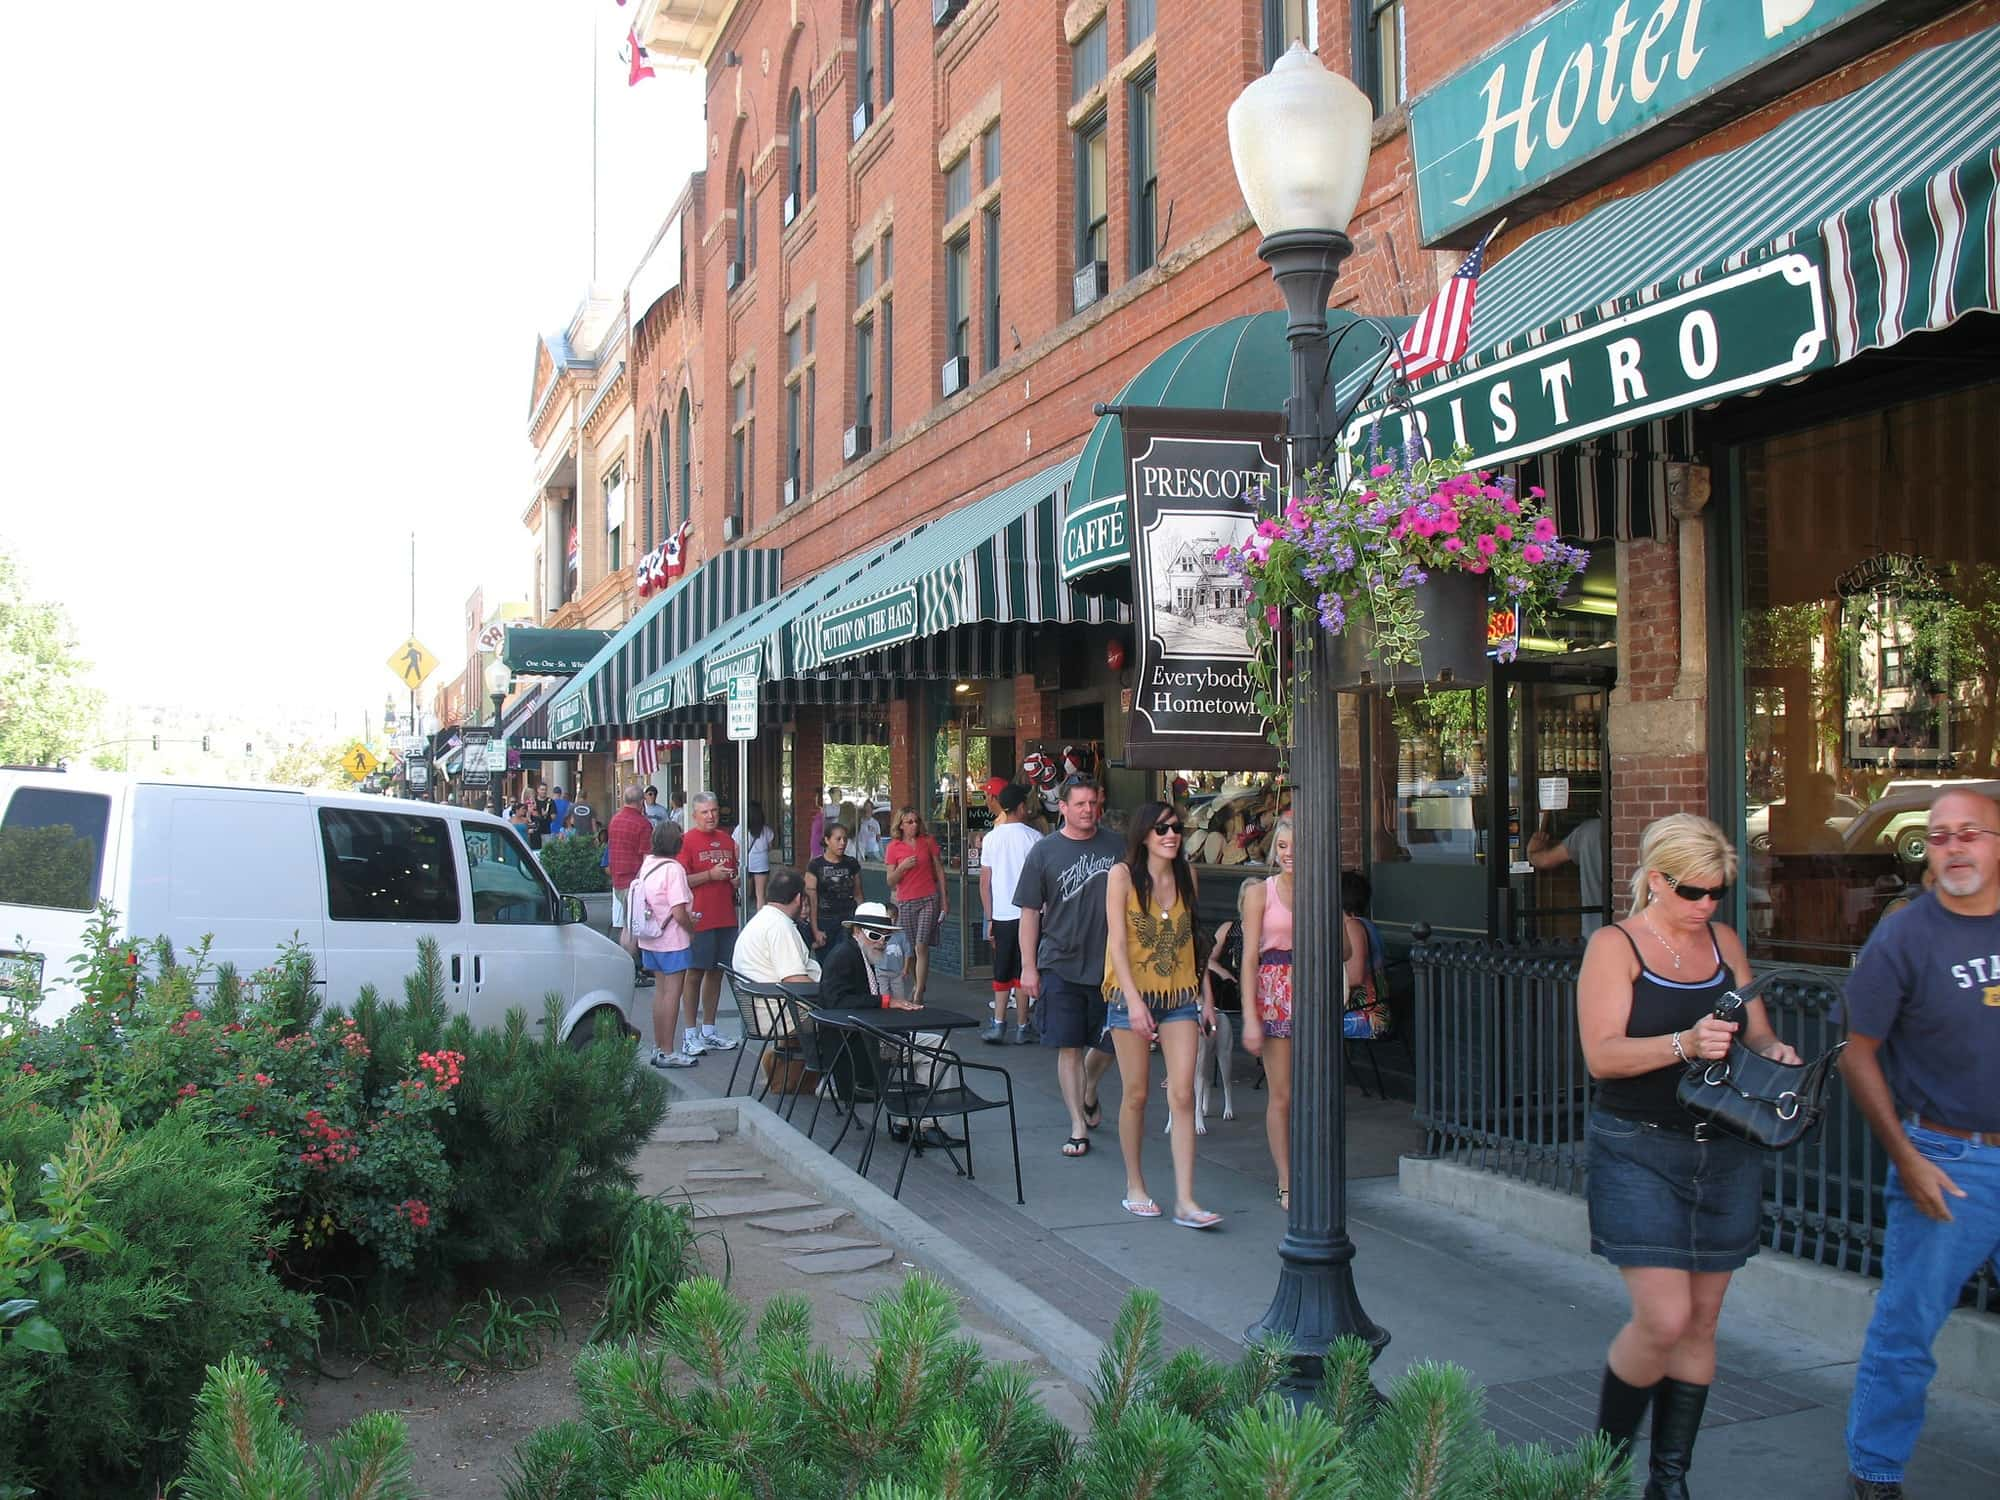 Once a red light district, Whisky Row is now filled with shops, restaurants and, yes, saloons